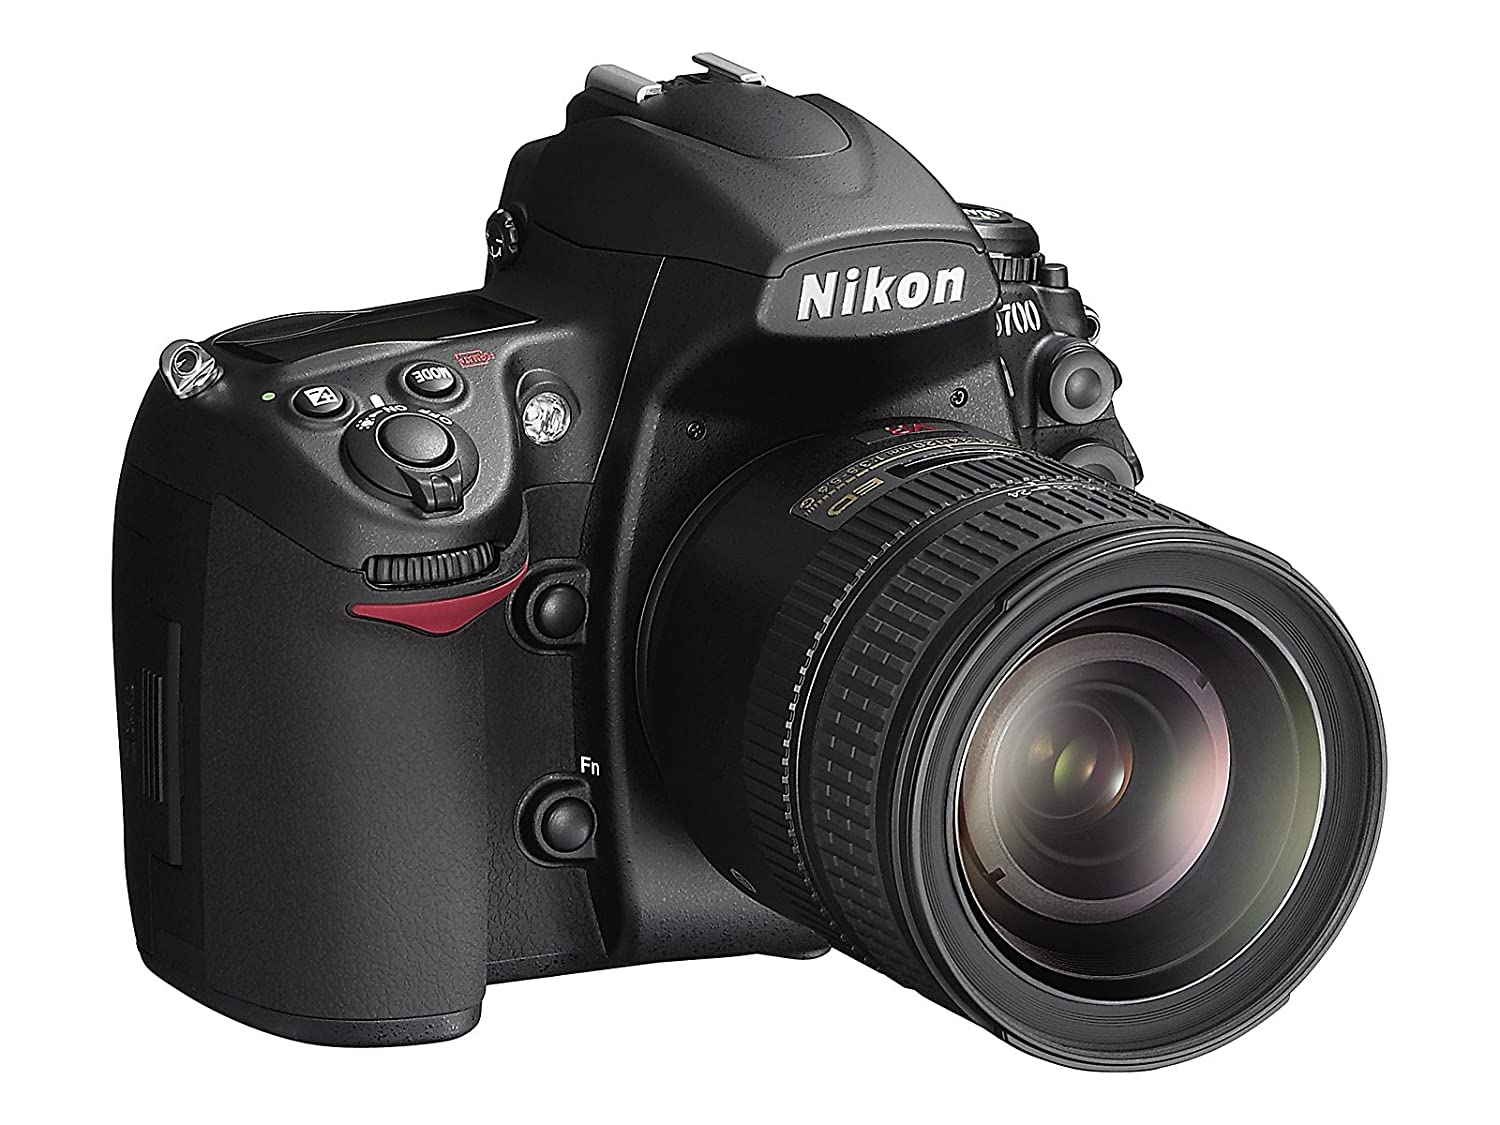 Camera Nikon Latest Dslr Camera 2014 amazon com nikon d700 12 1mp fx format cmos digital slr camera with 3 0 inch lcd body only old model photo